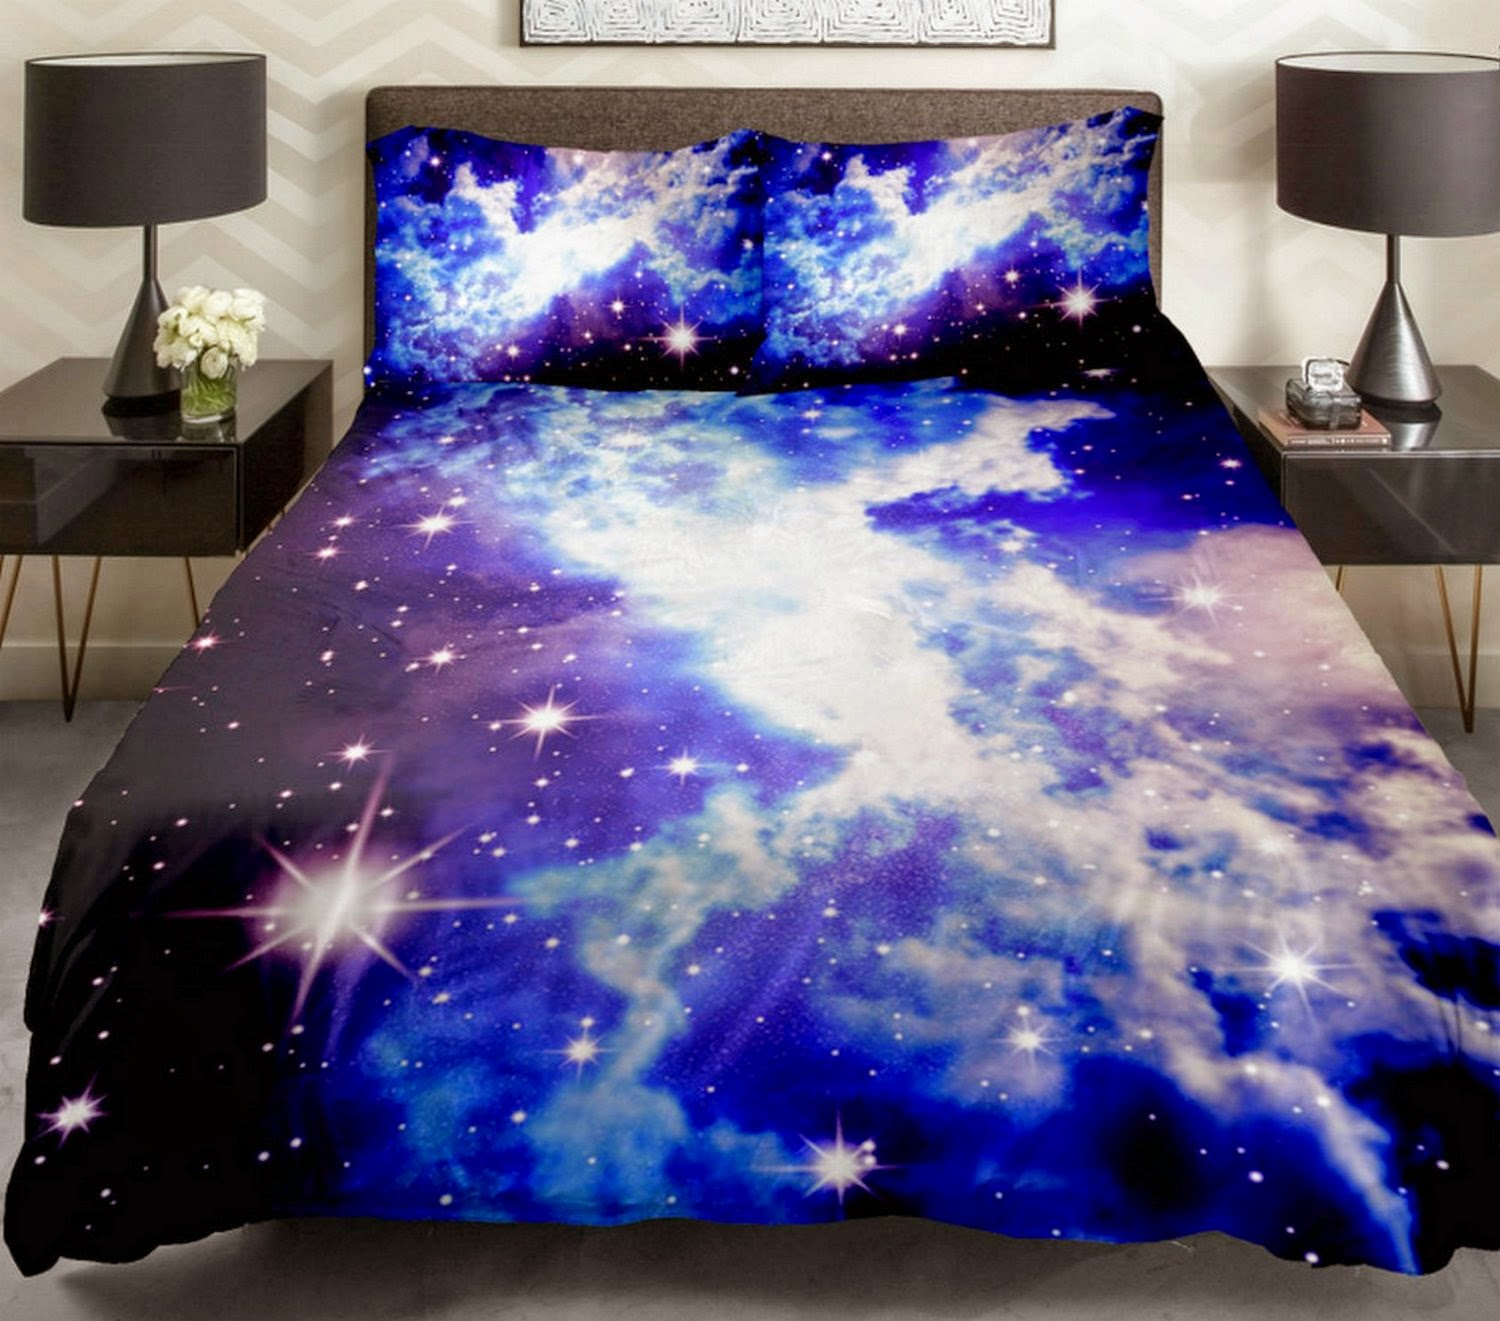 Outer Space Bedroom Decor Bedroom Decor Ideas And Designs Top Outer Space Bedding Thats